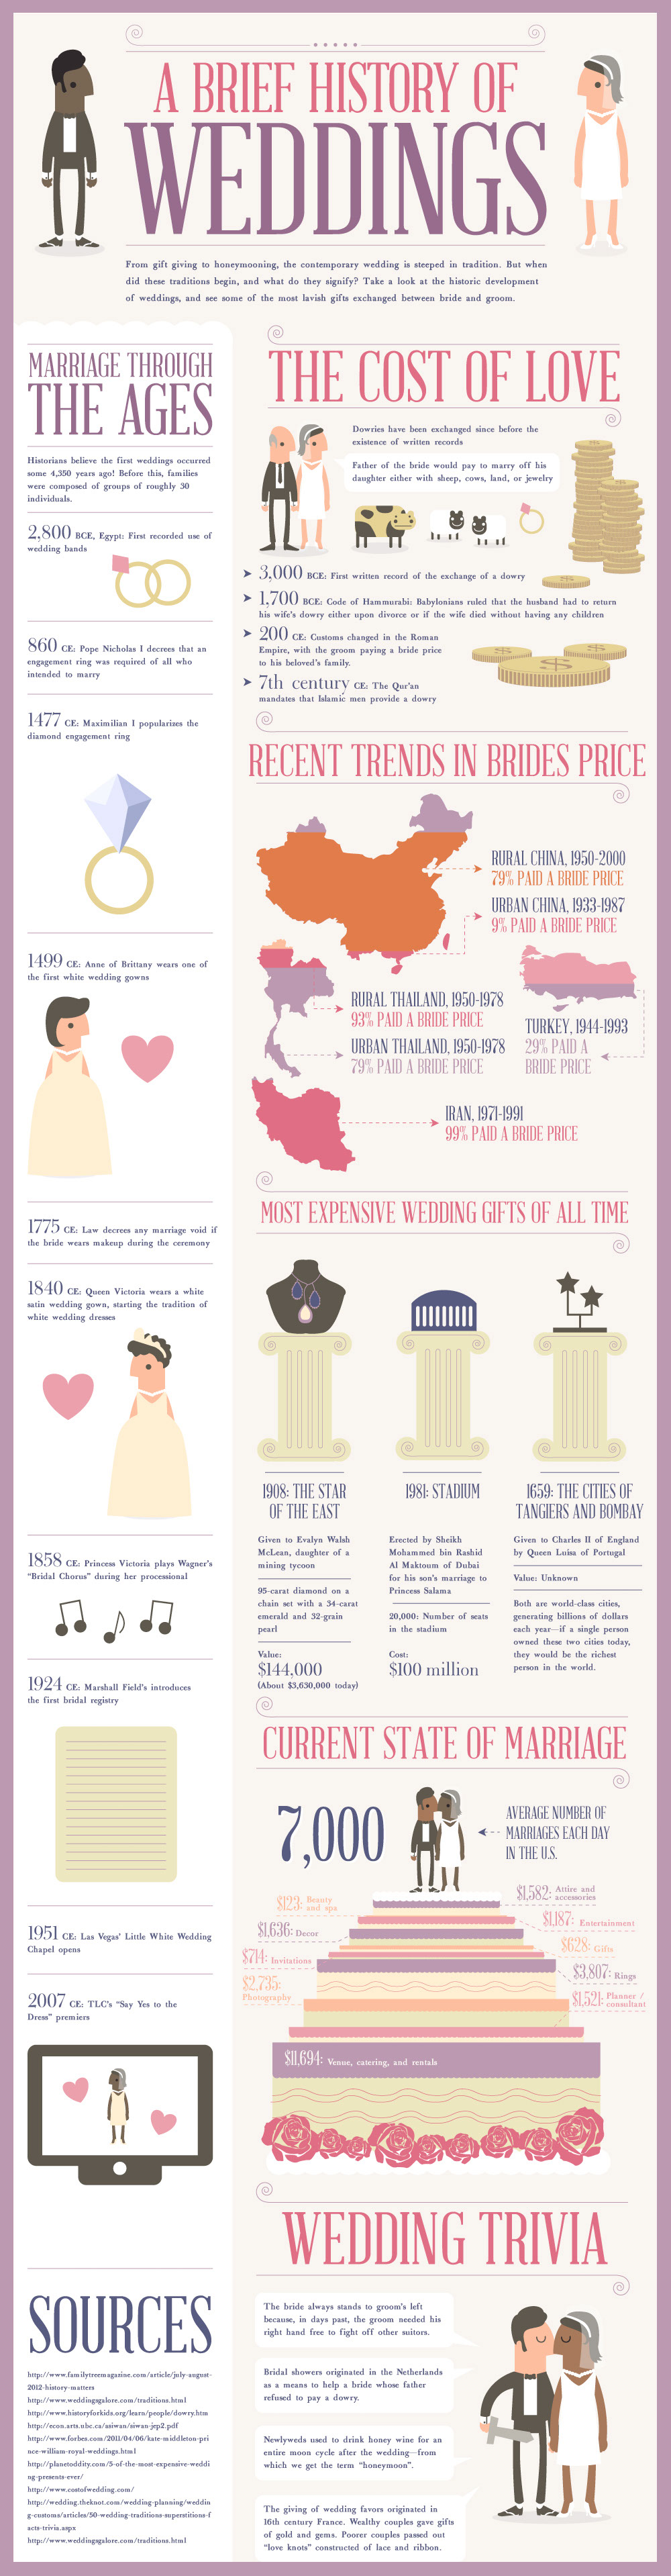 Wedding Gift Etiquette 2014 : Weddings EtiquetteiNFOGRAPHiCs MANiA